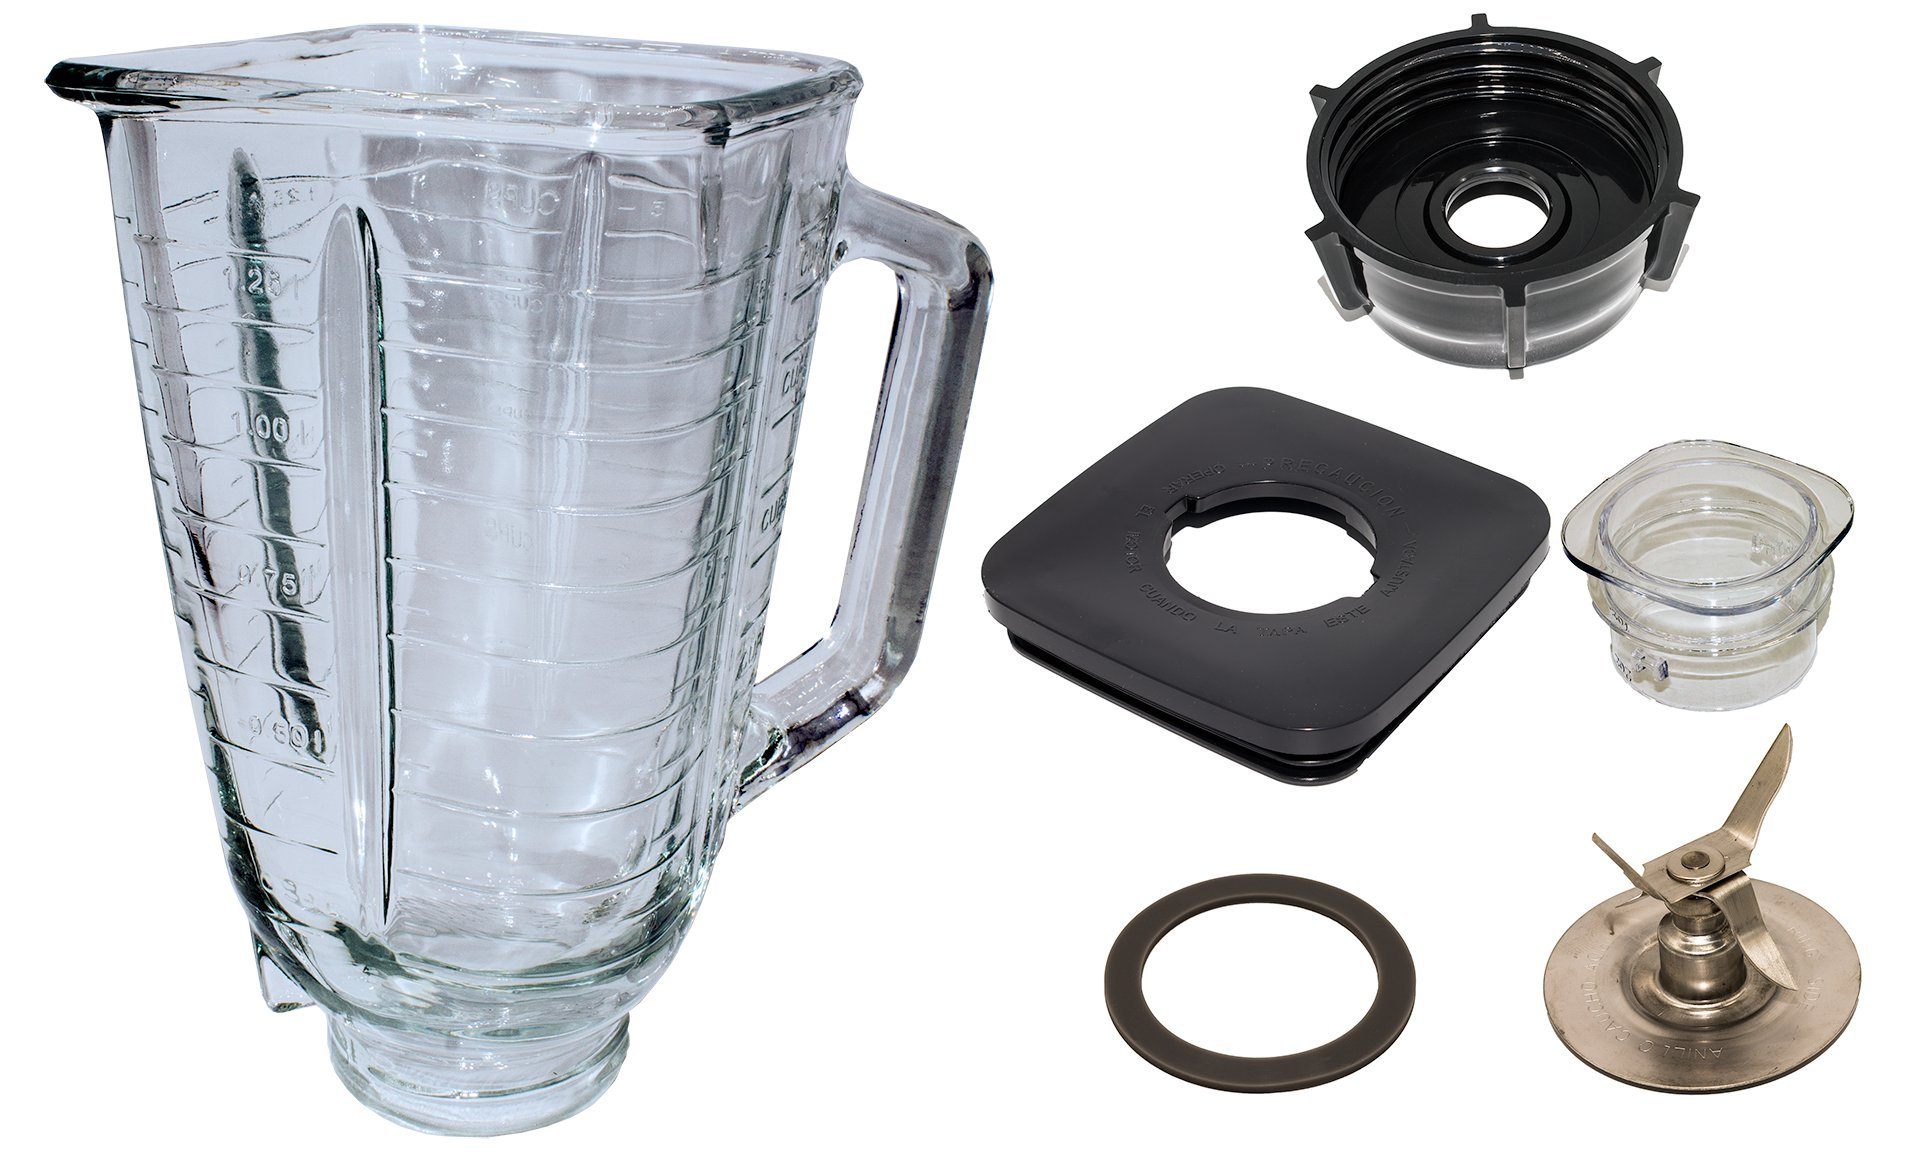 Blendin 5 Cup Square Top Glass Jar Assembly With Blade, Gasket, Base, Lid. Fits Oster Blenders